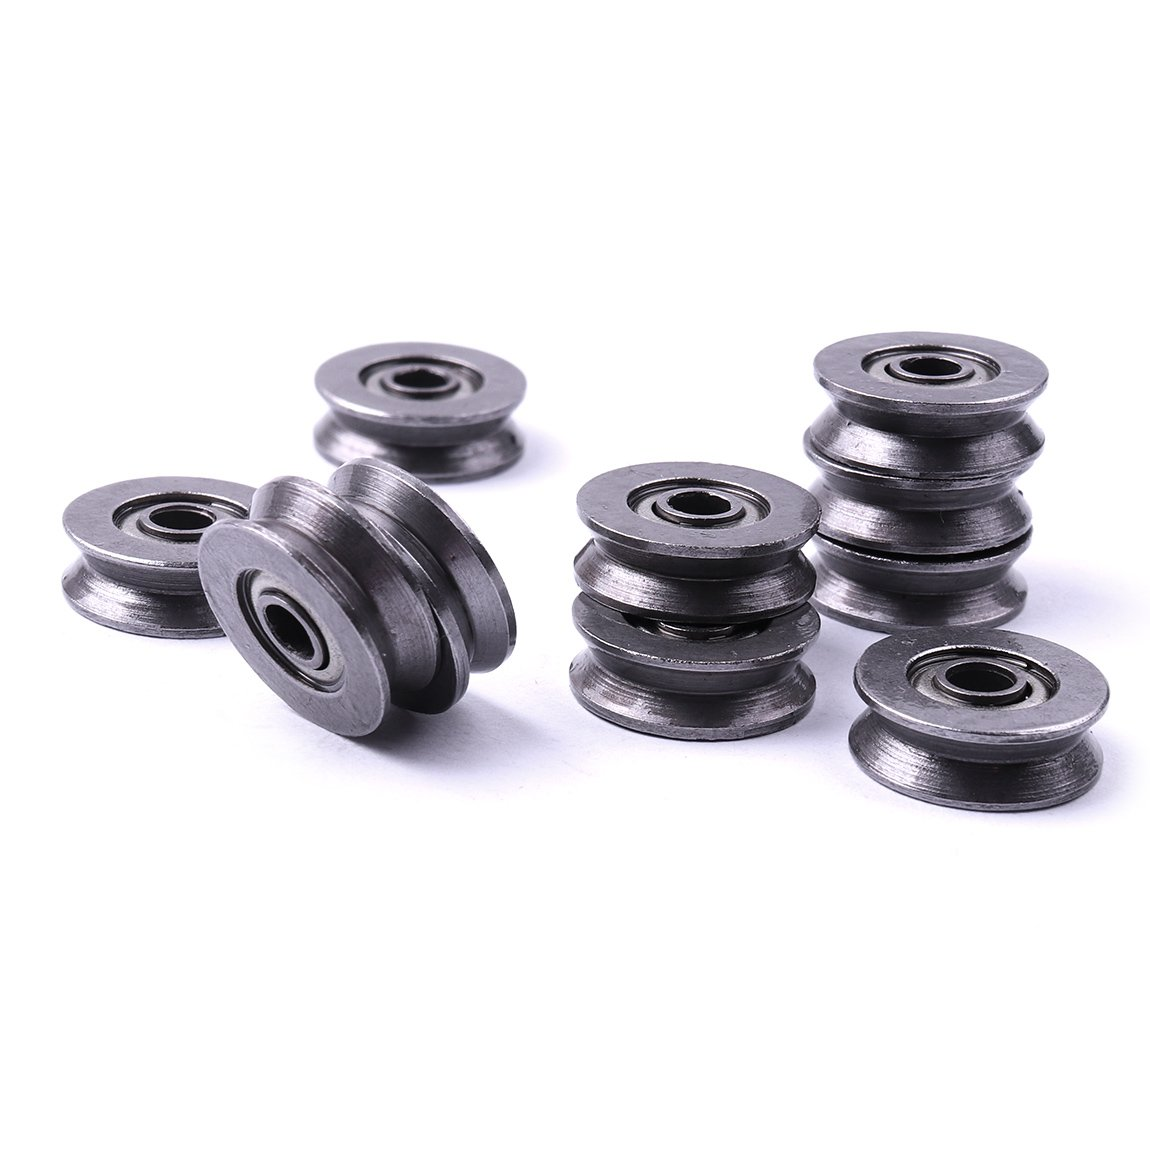 Atoplee 20pcs High Carbon Steel Wire V Groove Pulley Bearing 3x12x4mm